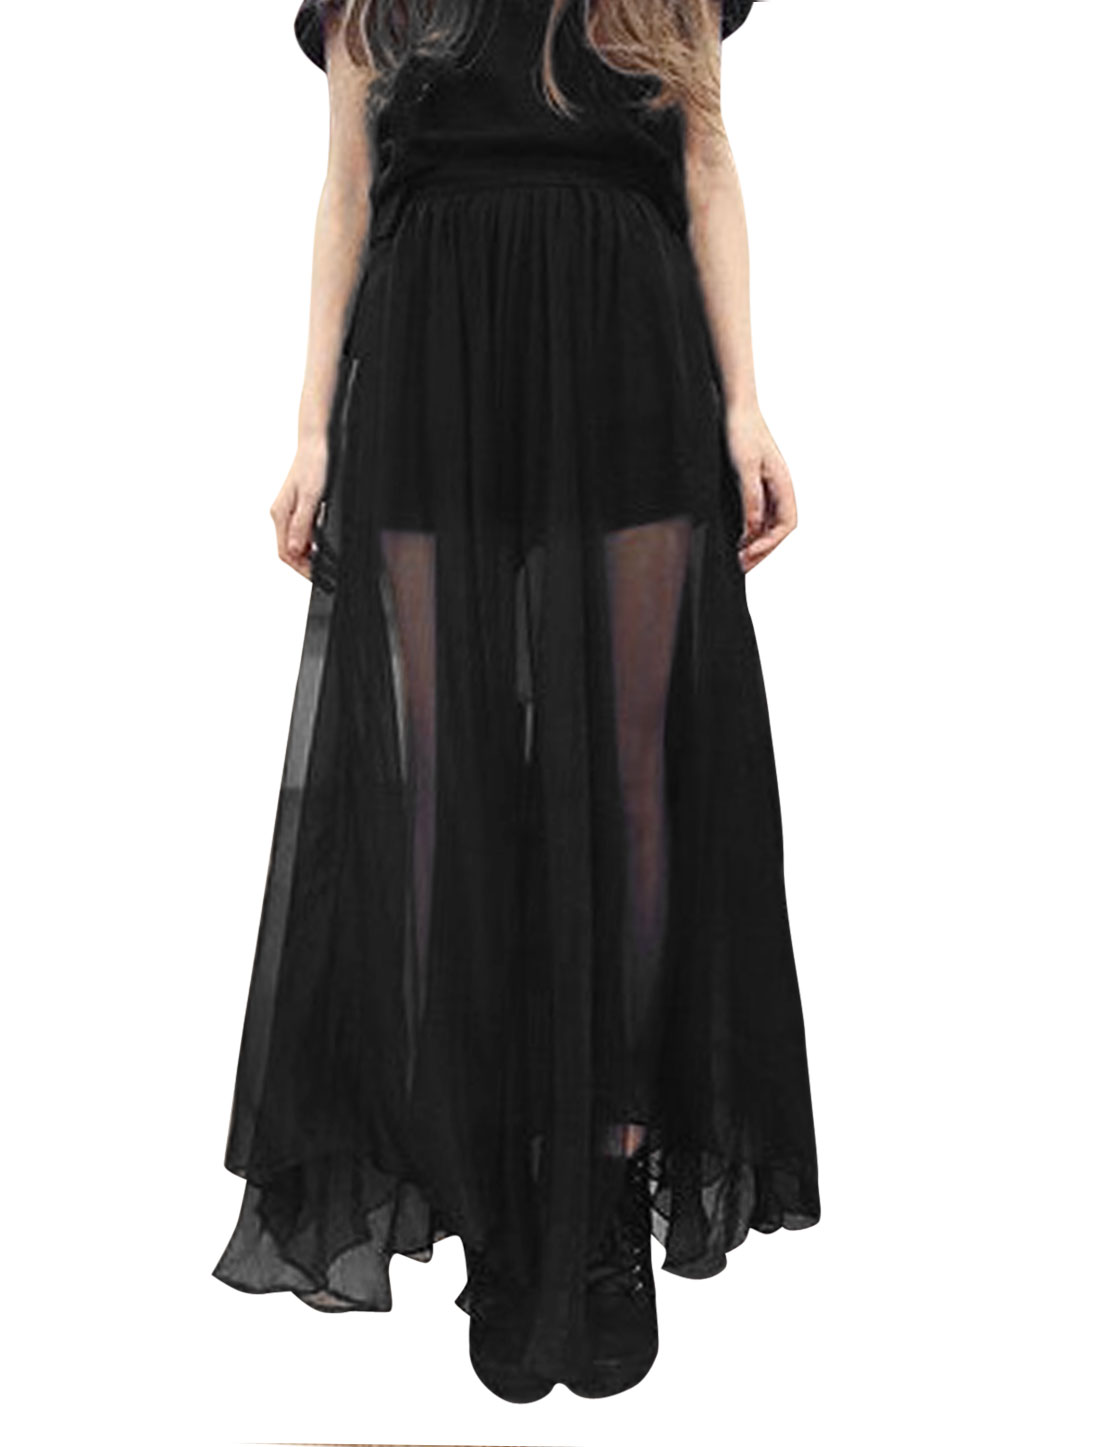 Lady Elastic Waist Semi Sheer Mid Calf Shorts Lining Skirt Black XS